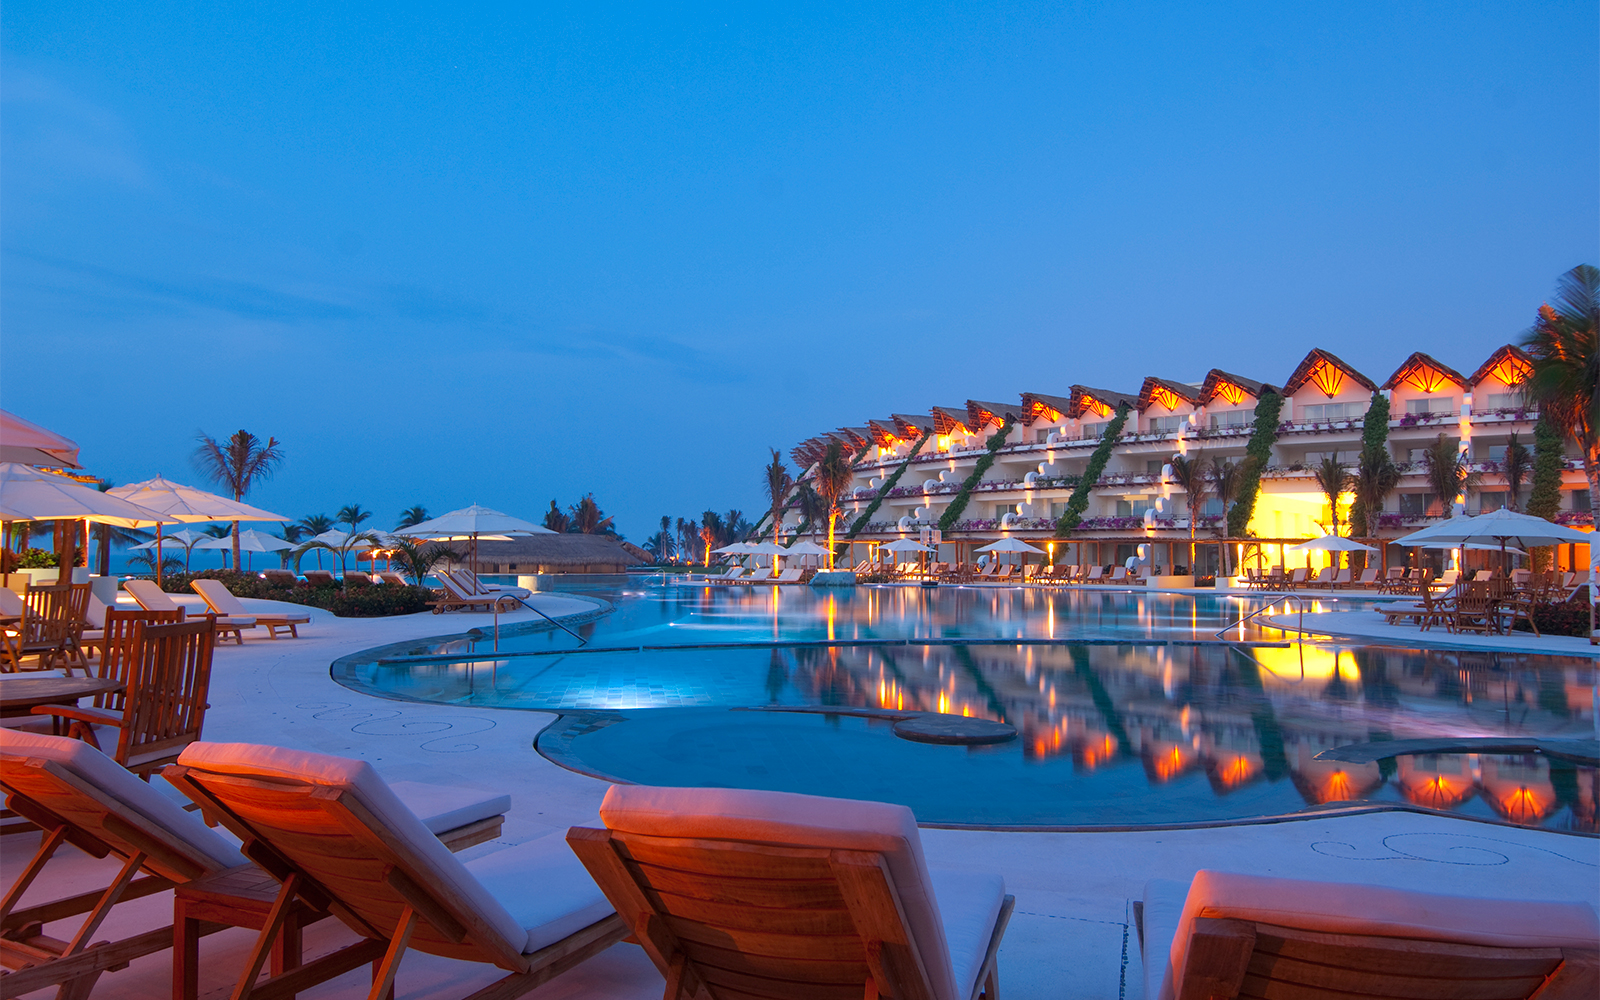 Caribbean Group Getaways: Grand Velas Riviera Maya in Playa del Carmen, Mexico